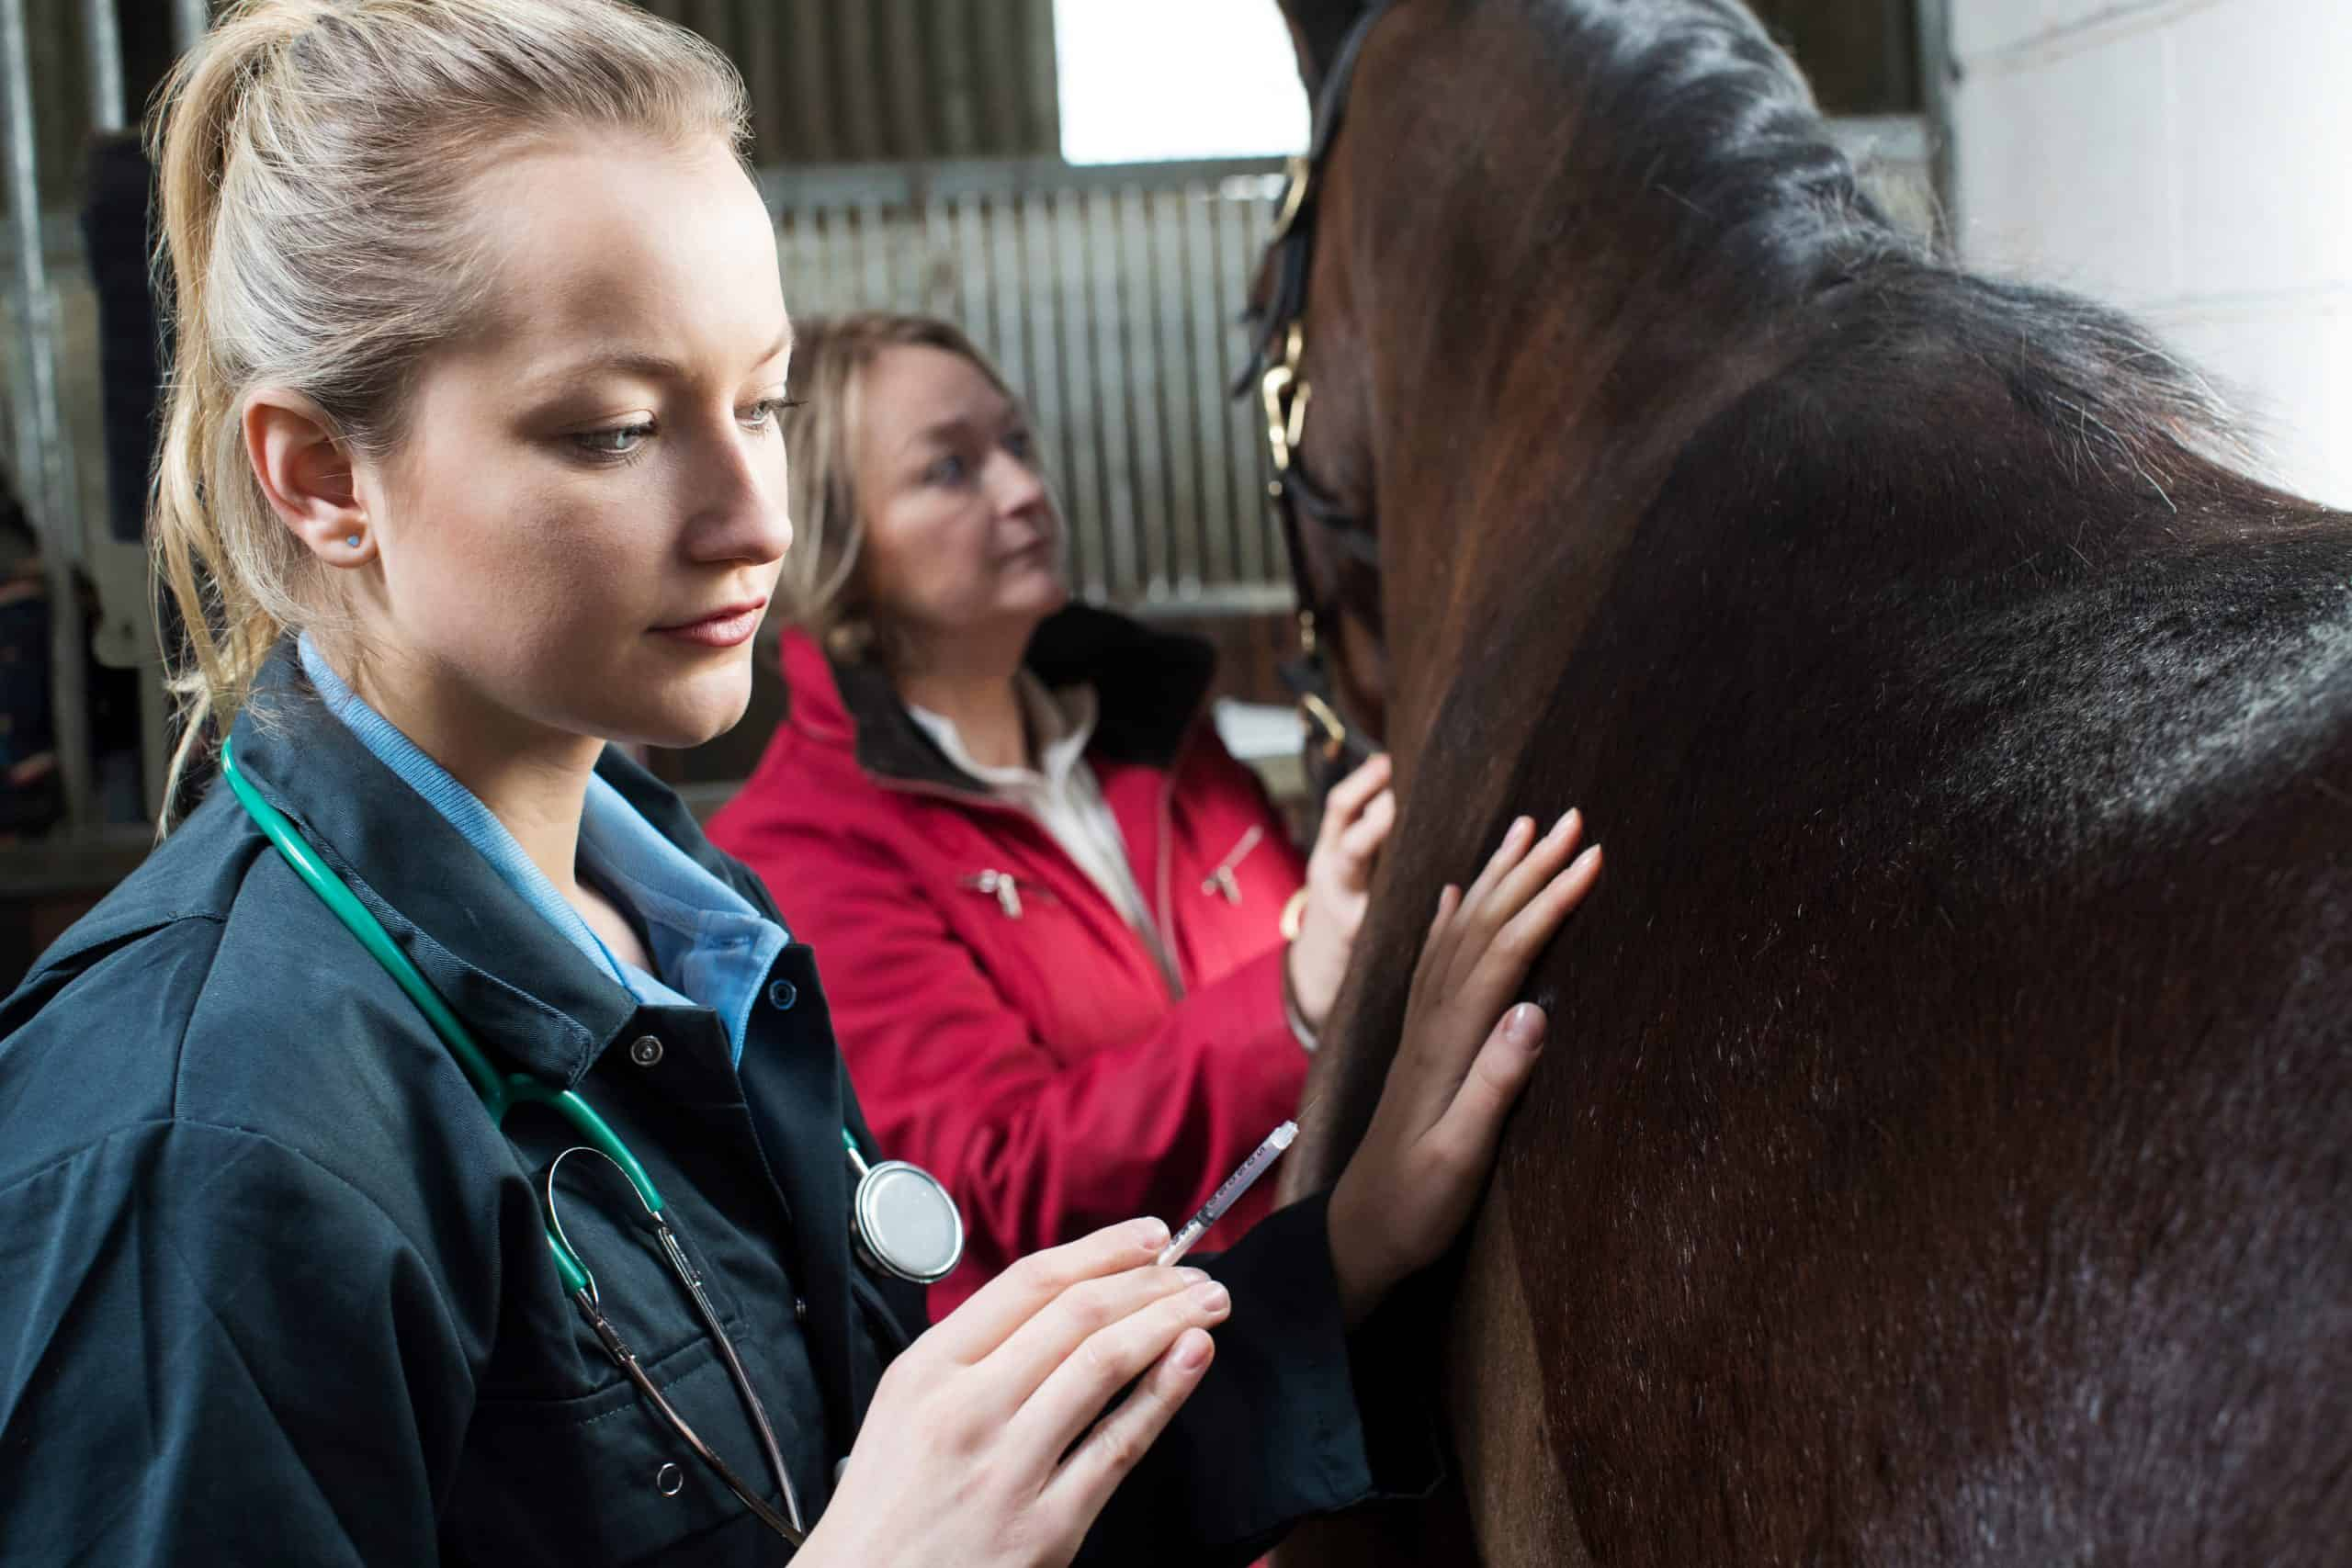 Female Vet Giving Injection To equine In Stable